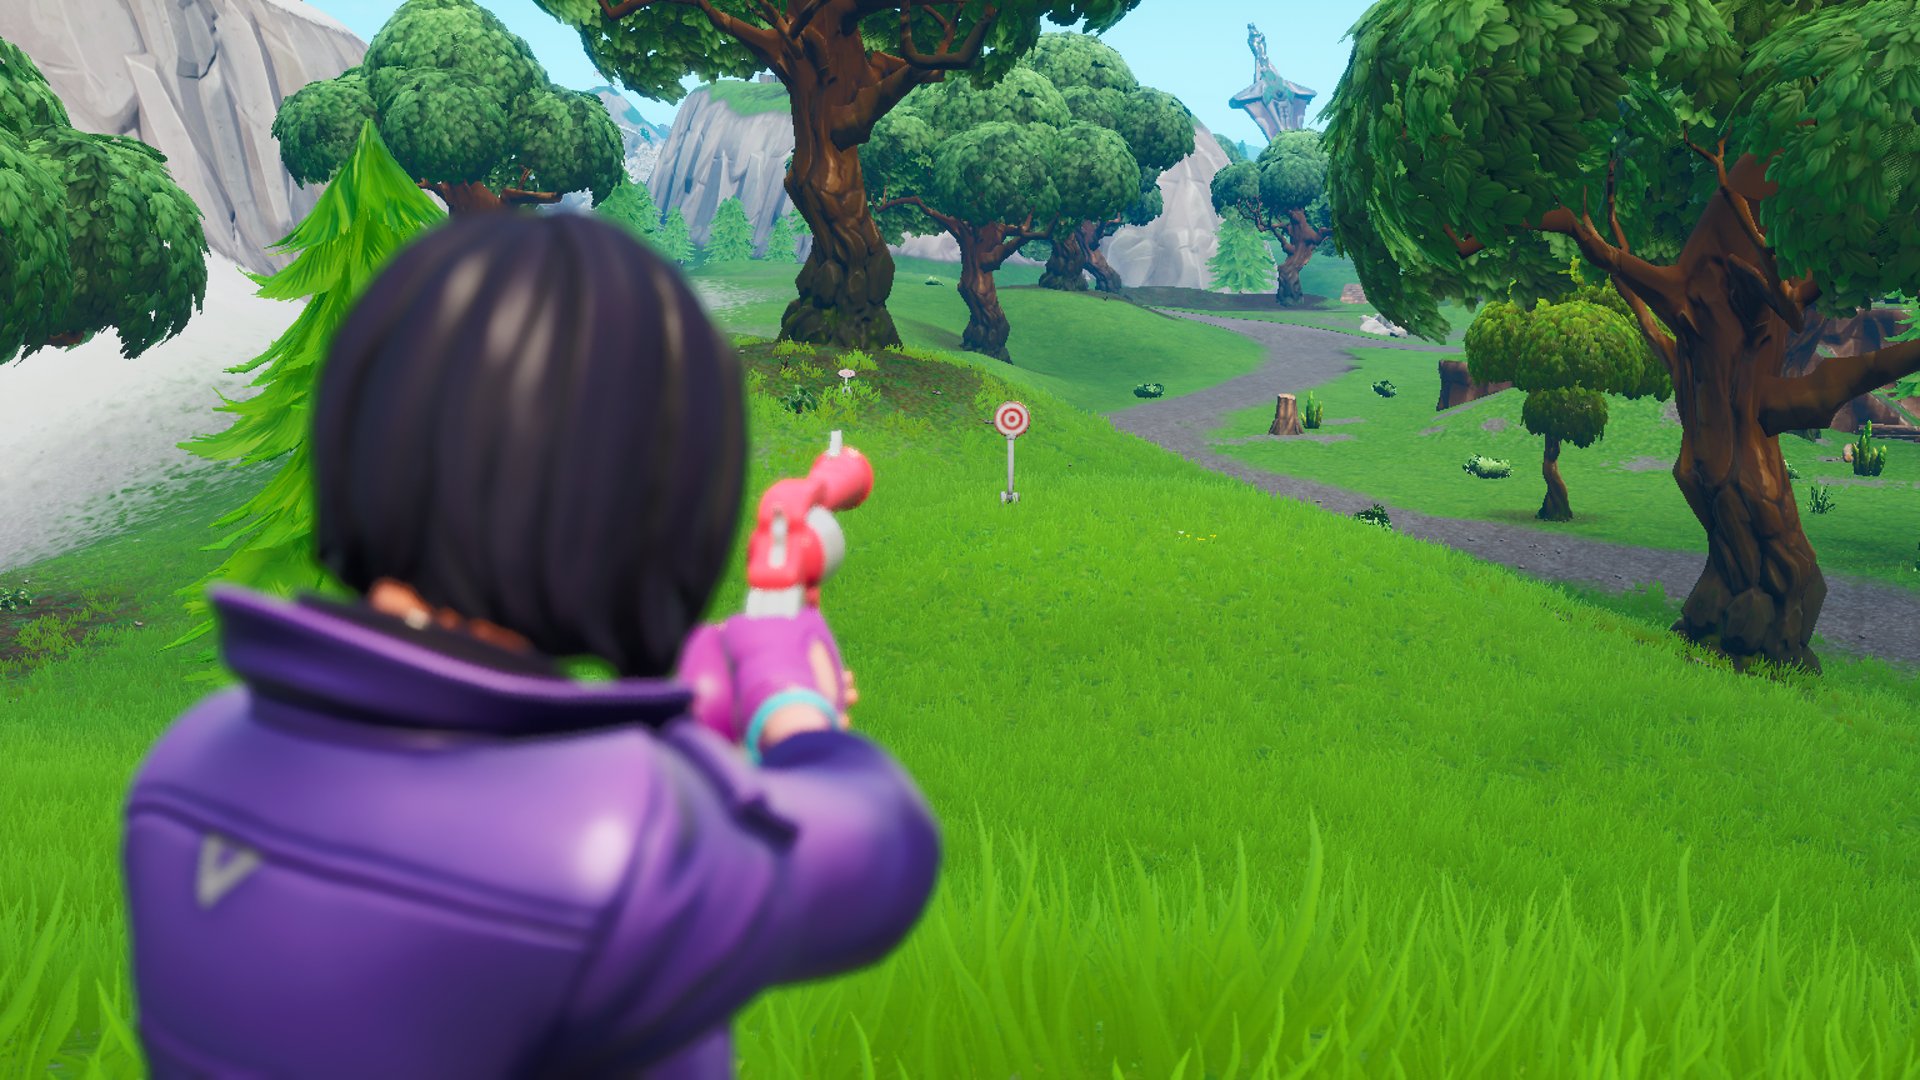 A Fortnite player takes aim at a firing range target in front of them